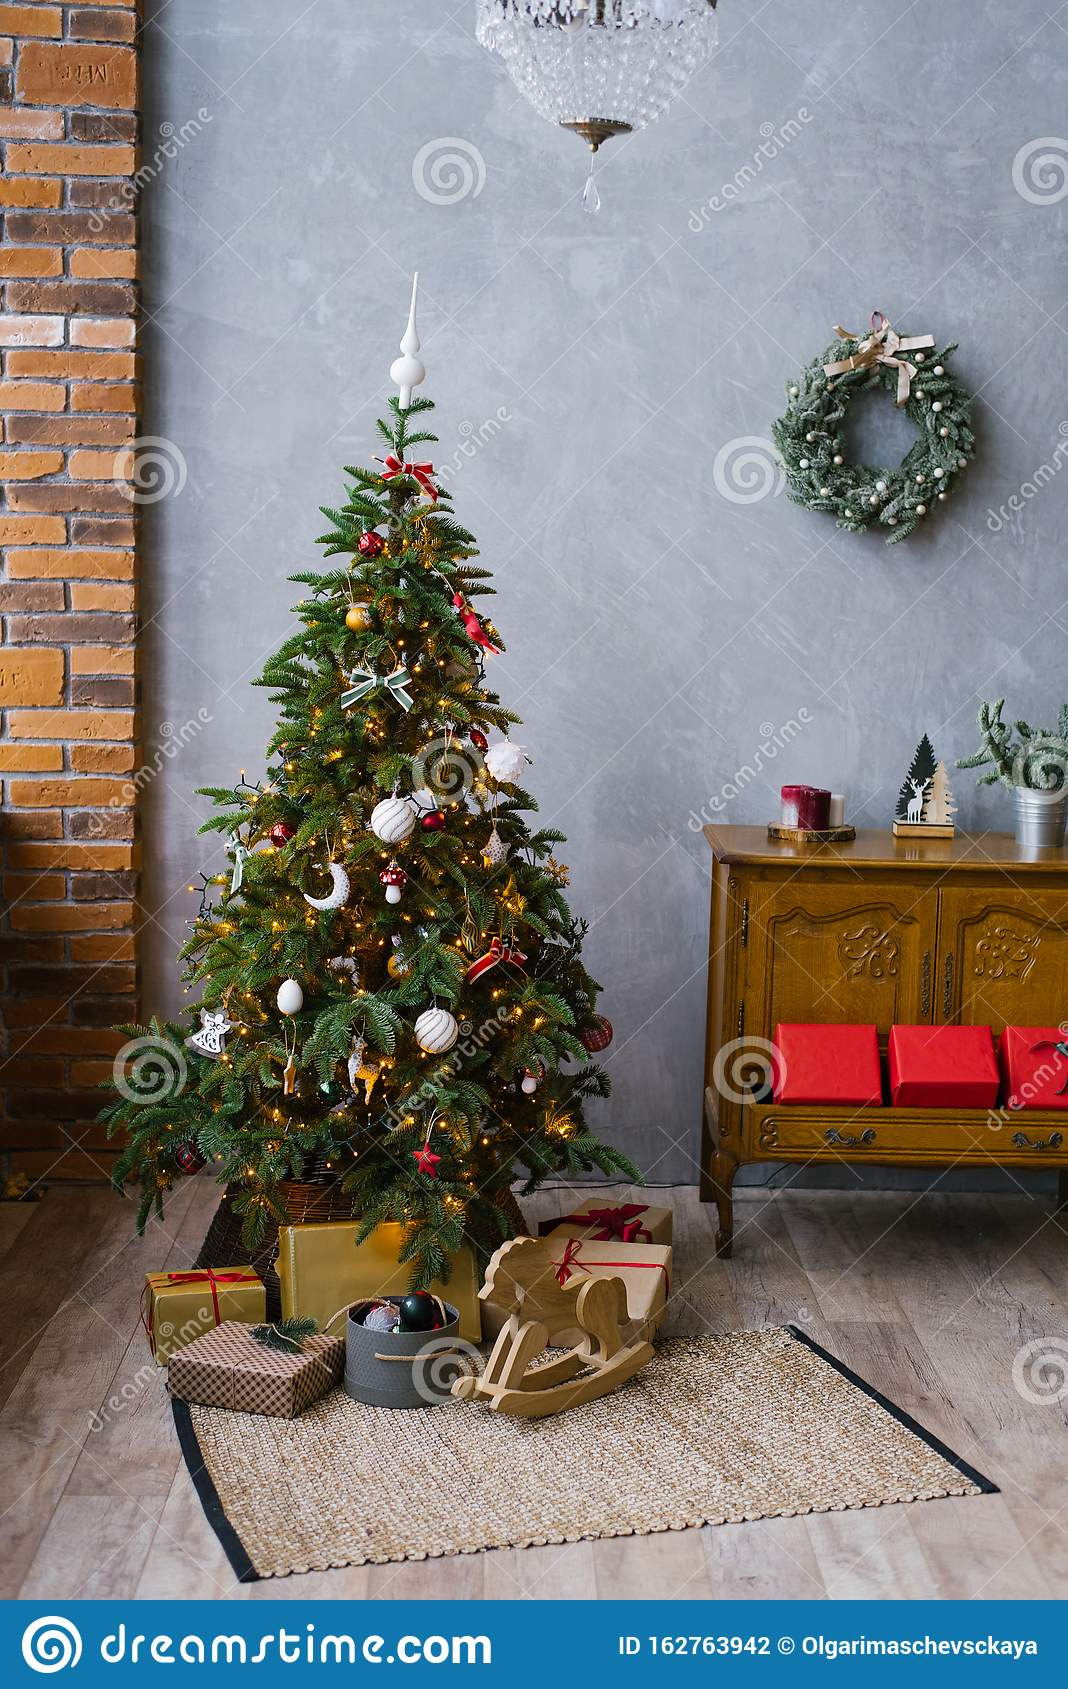 Traditional Christmas Tree With Gifts Under It And A ...